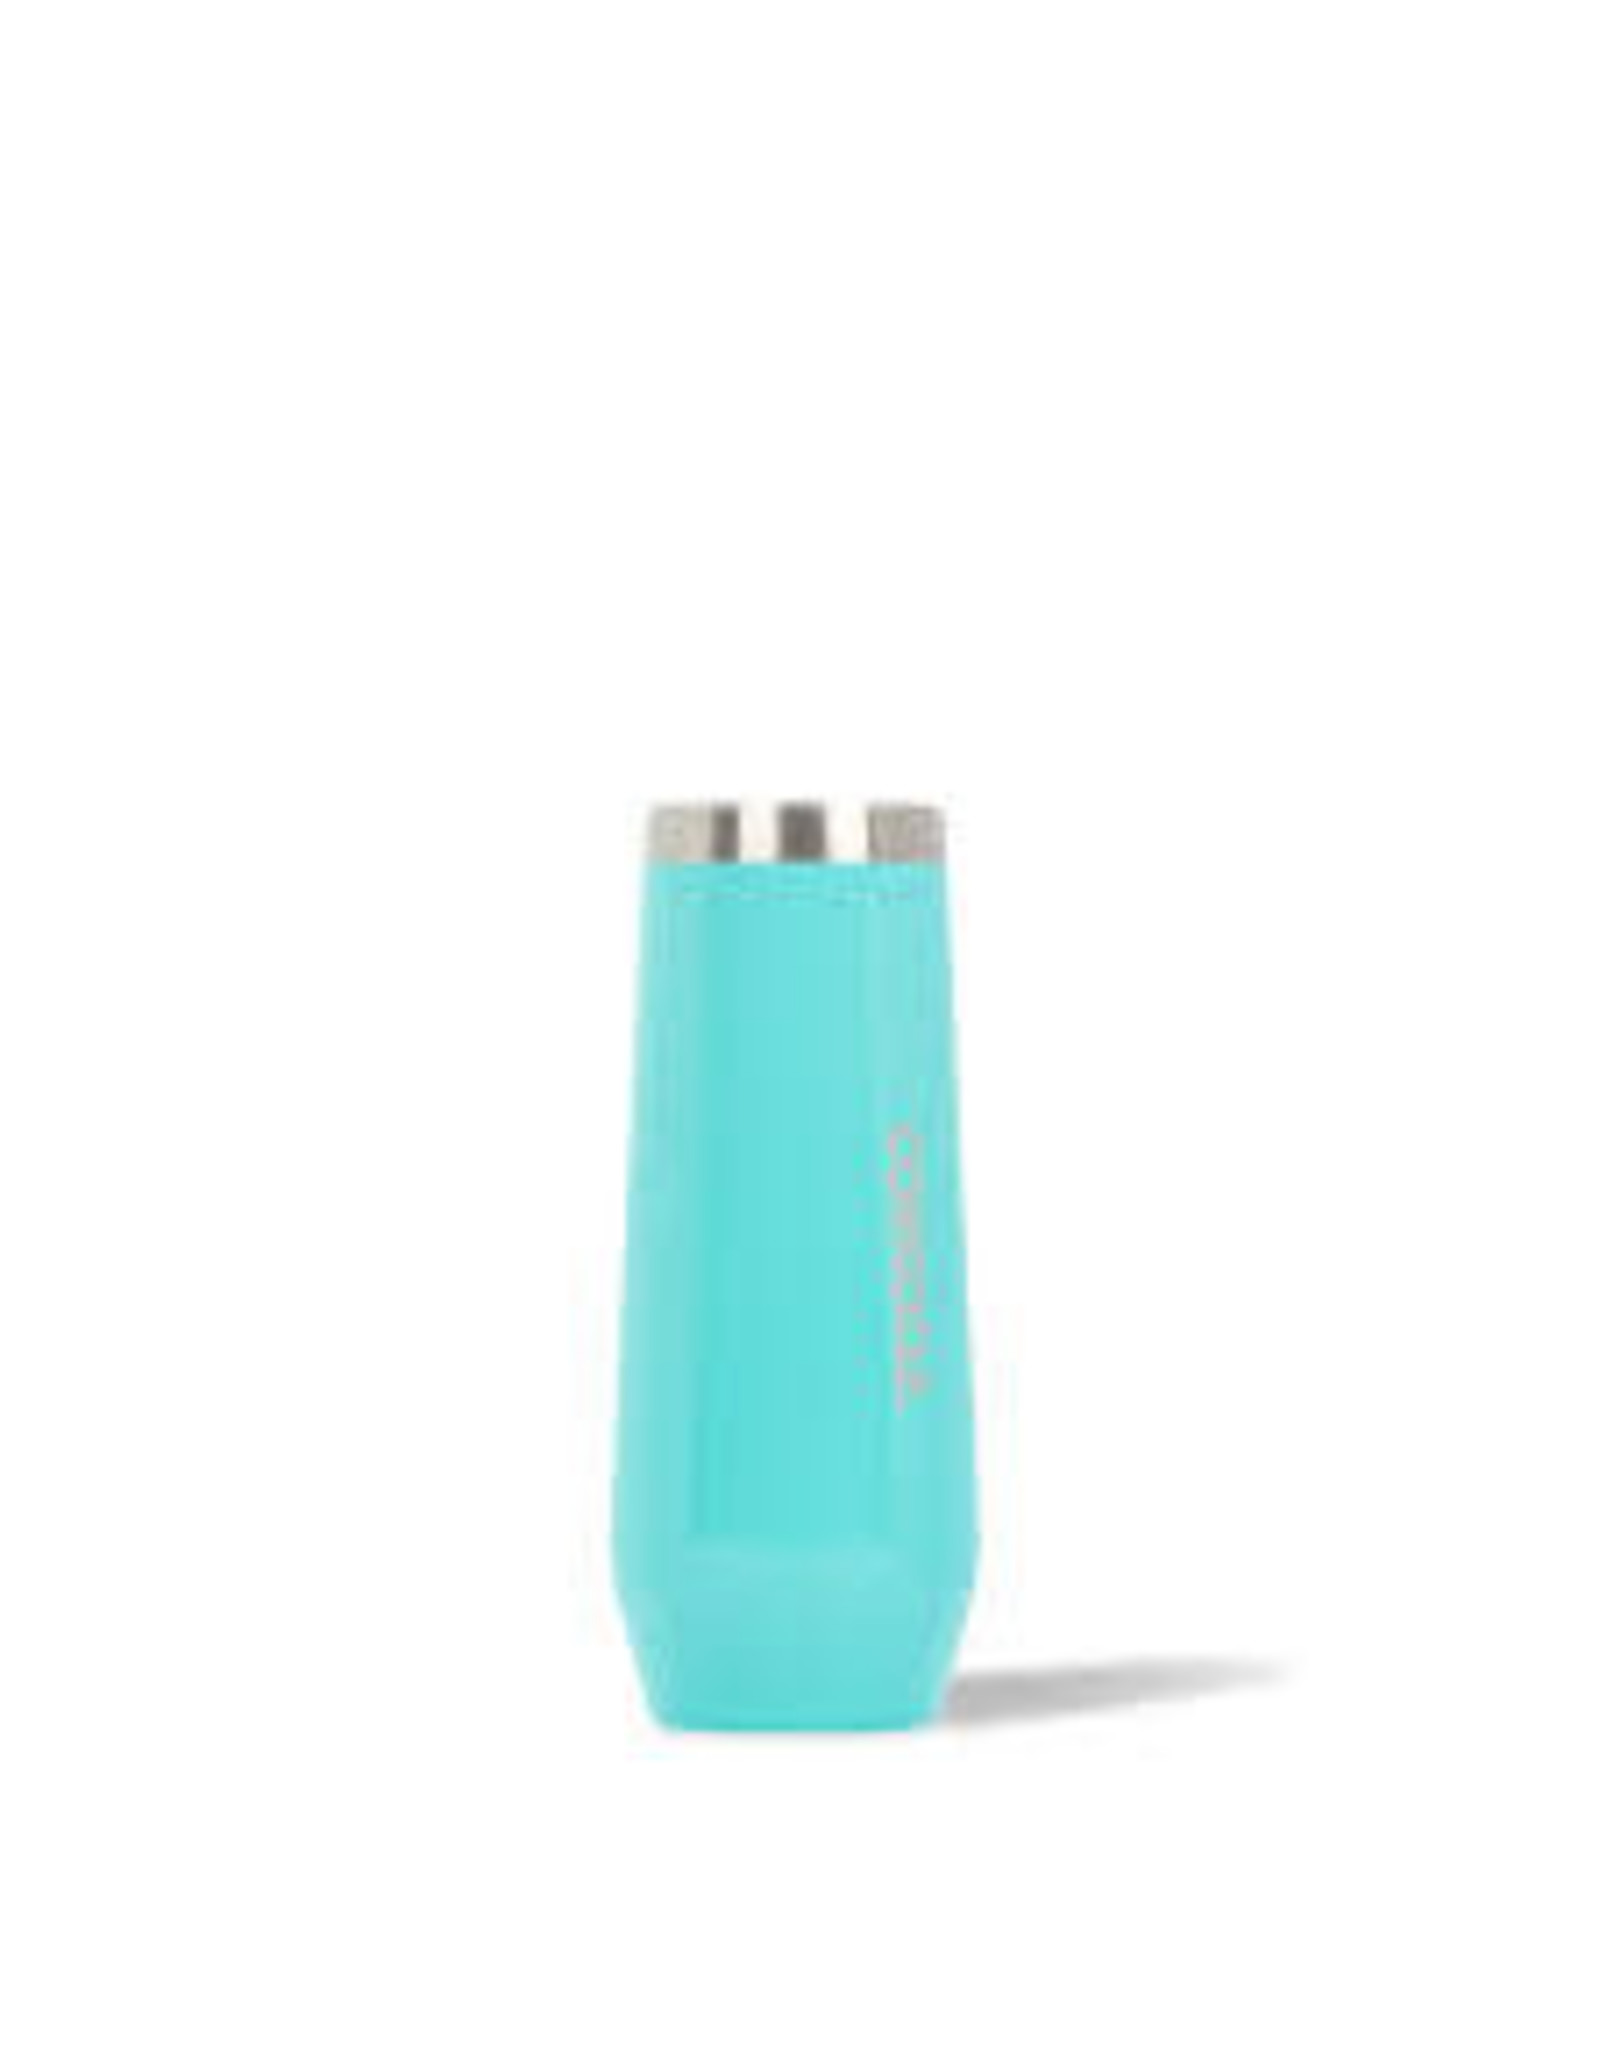 Corkcicle Stemless Flute - 8 oz. Gloss Turquoise